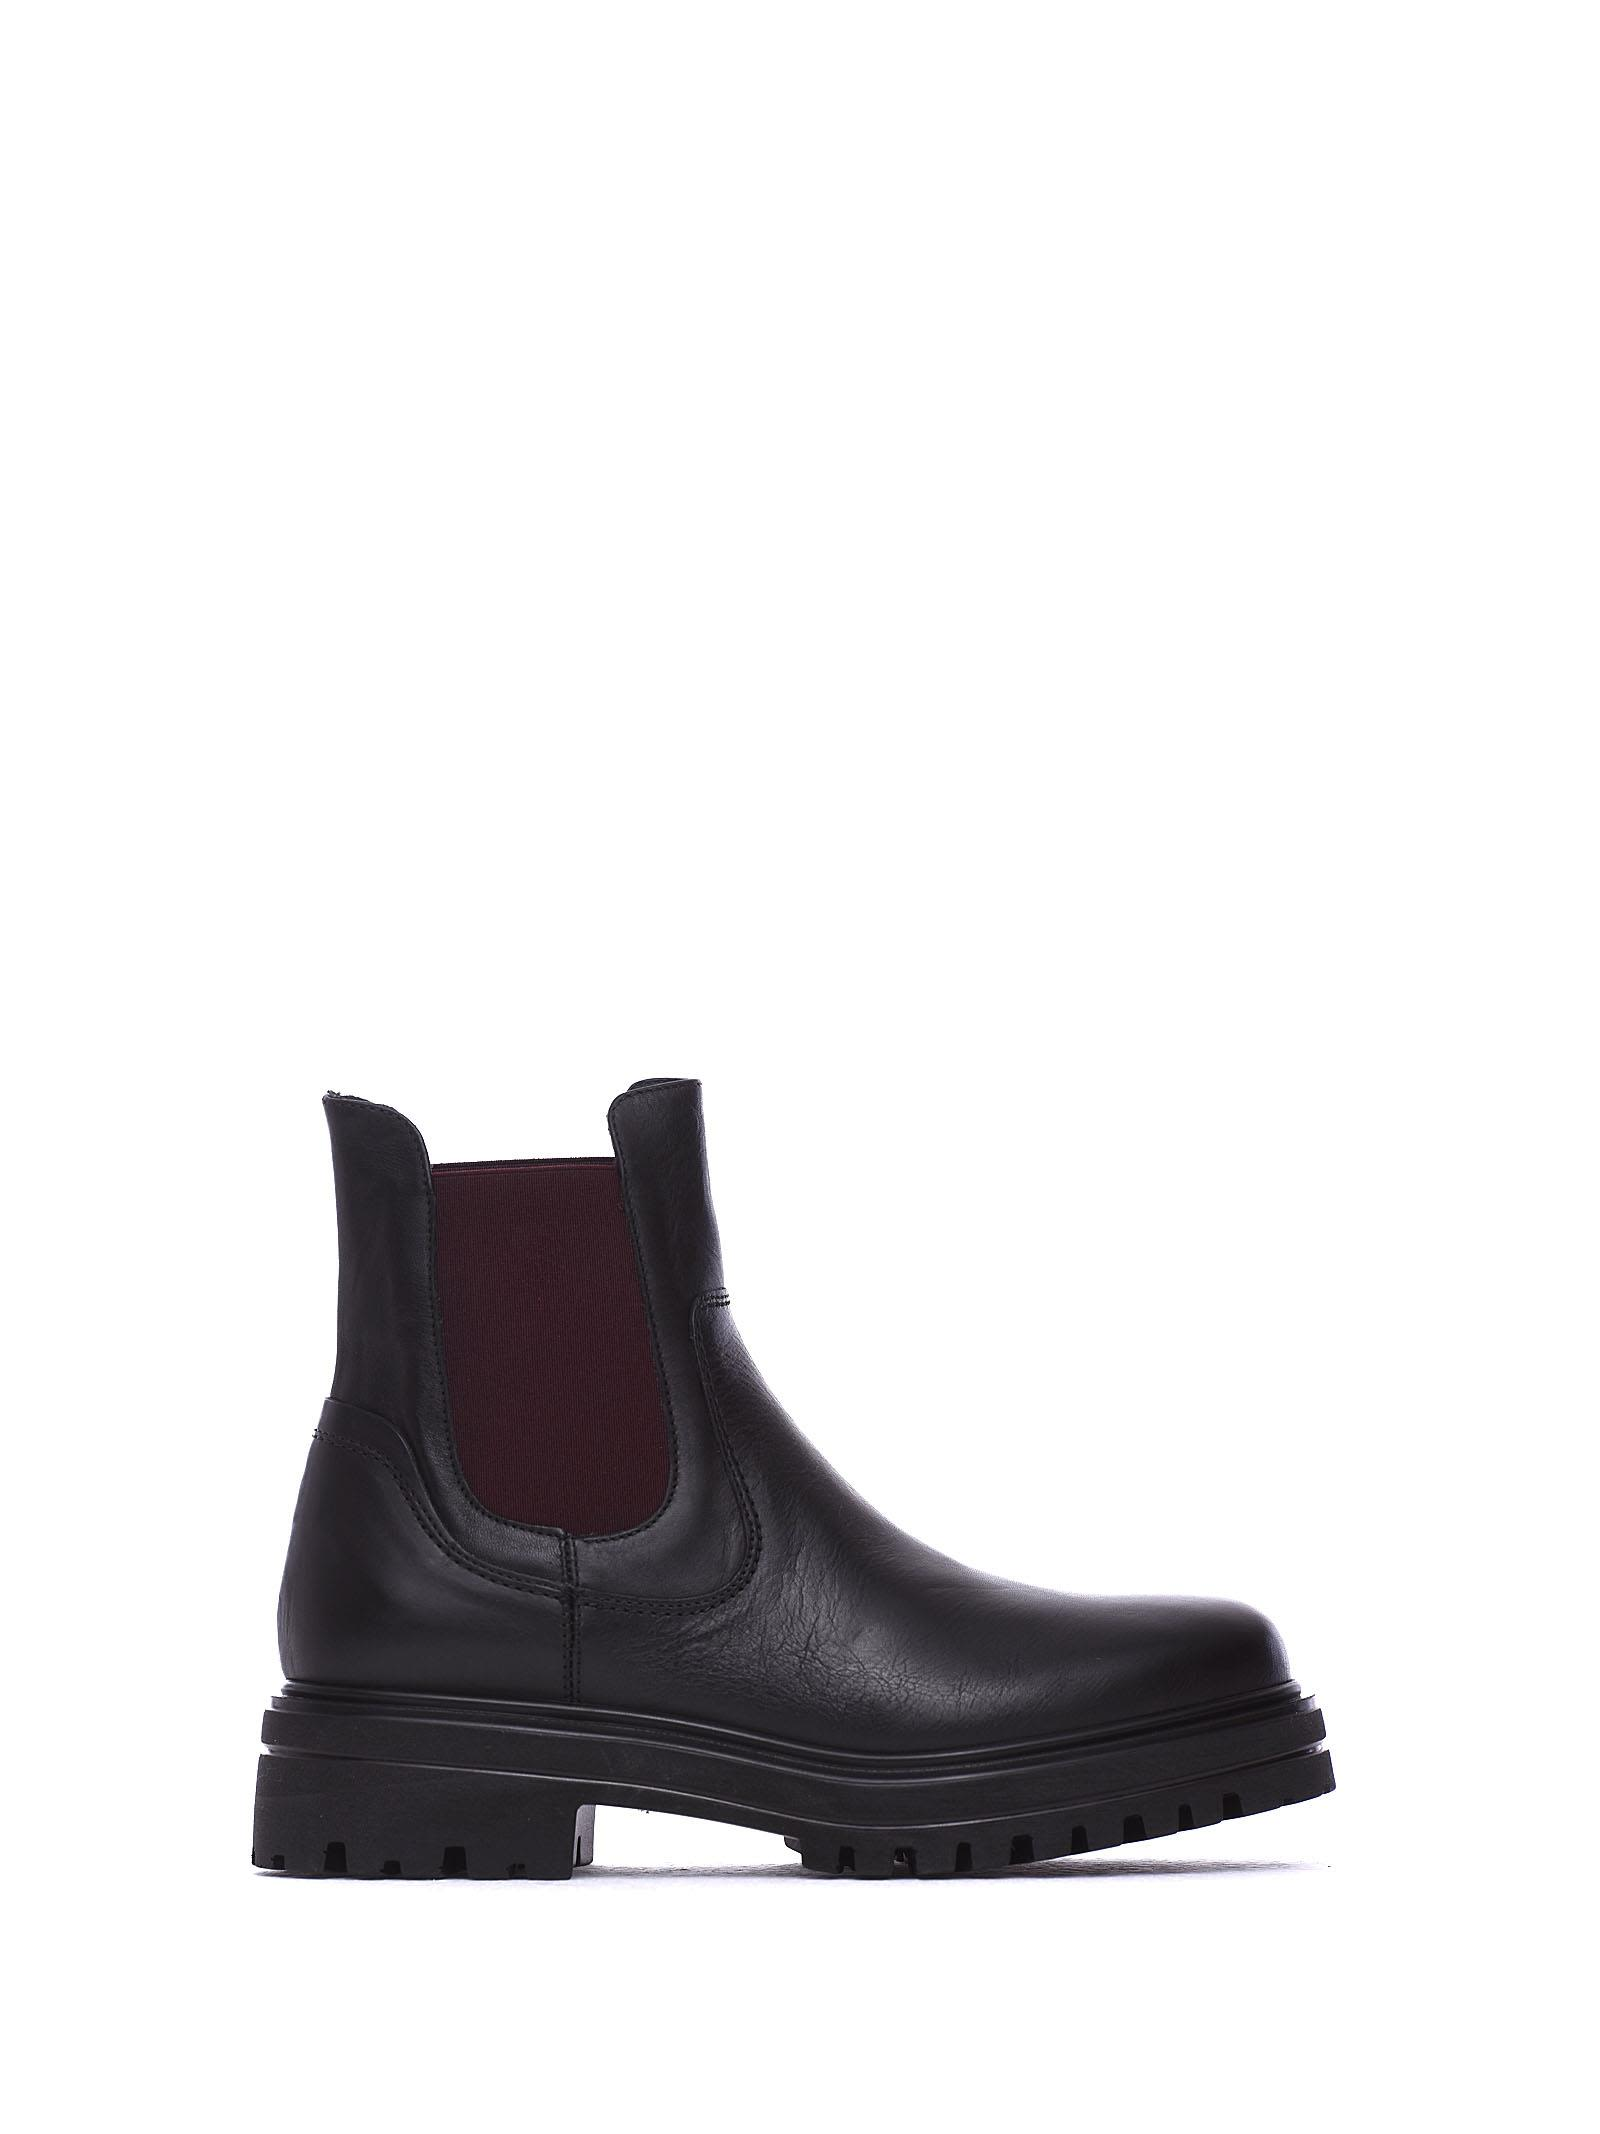 JANET&JANET Molly Black Ankle Boots in Nero